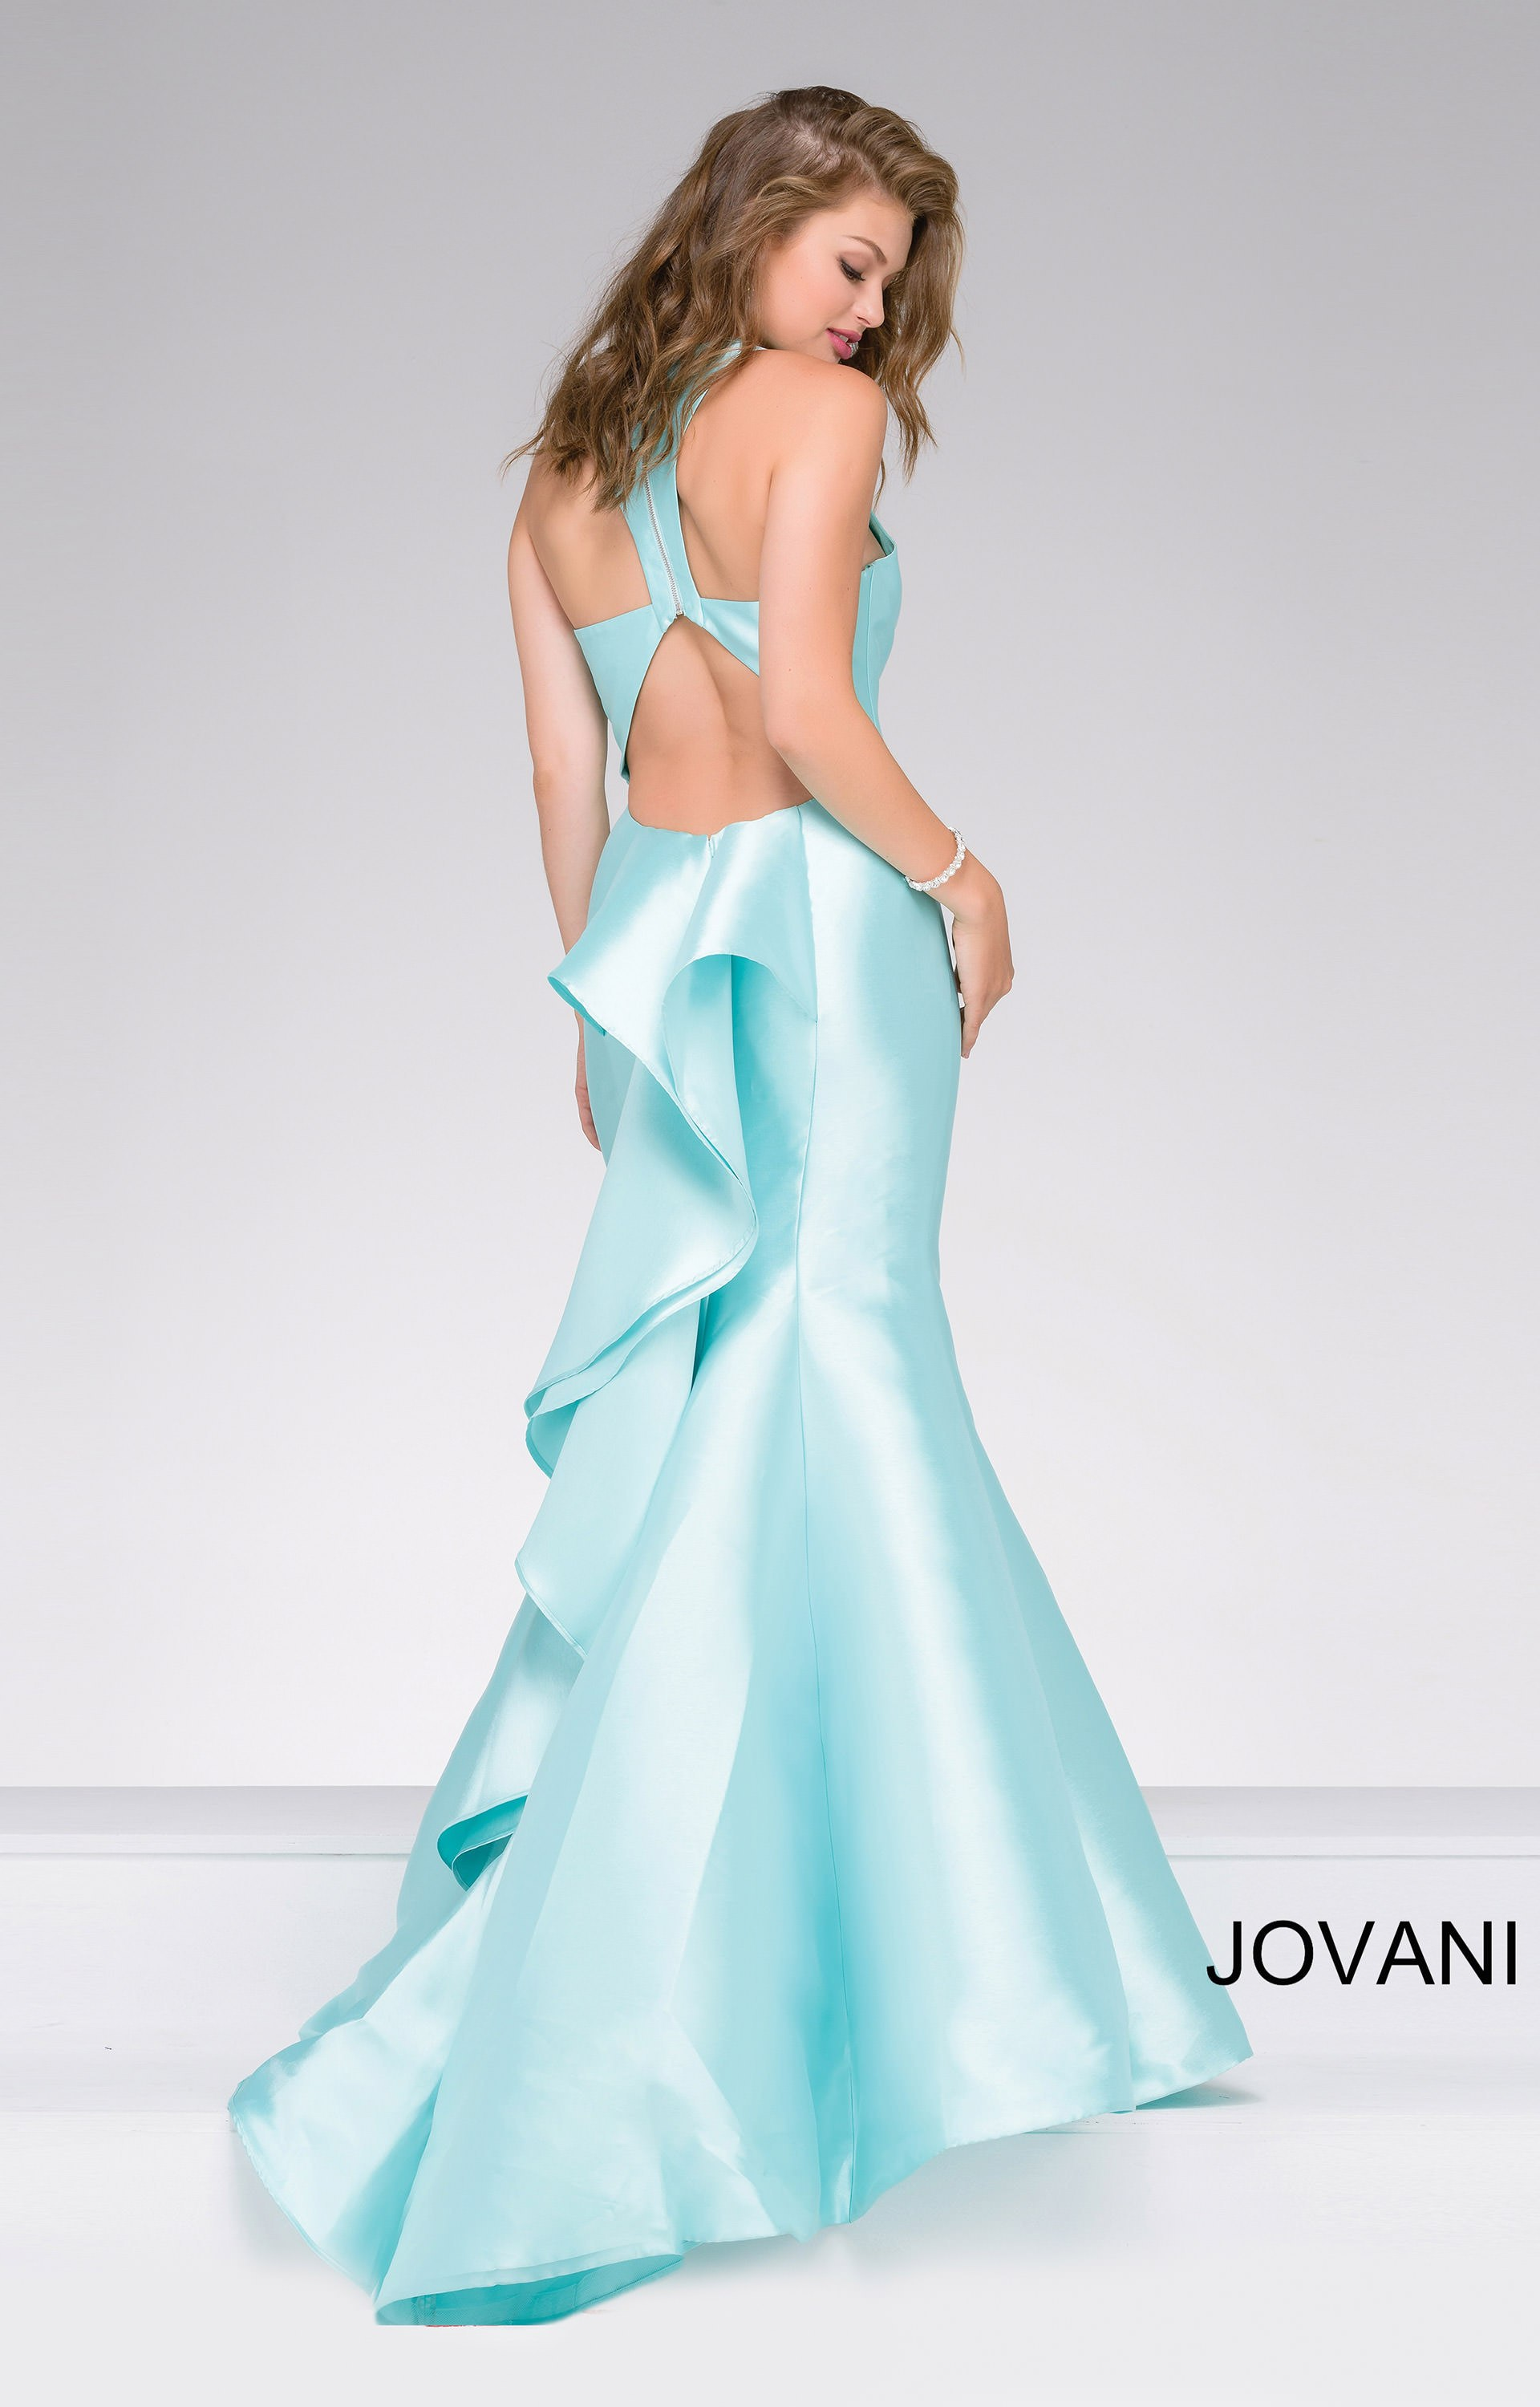 Jovani 40780 - Shiny Satin Fit and Flare with Ruffle Detail Prom Dress